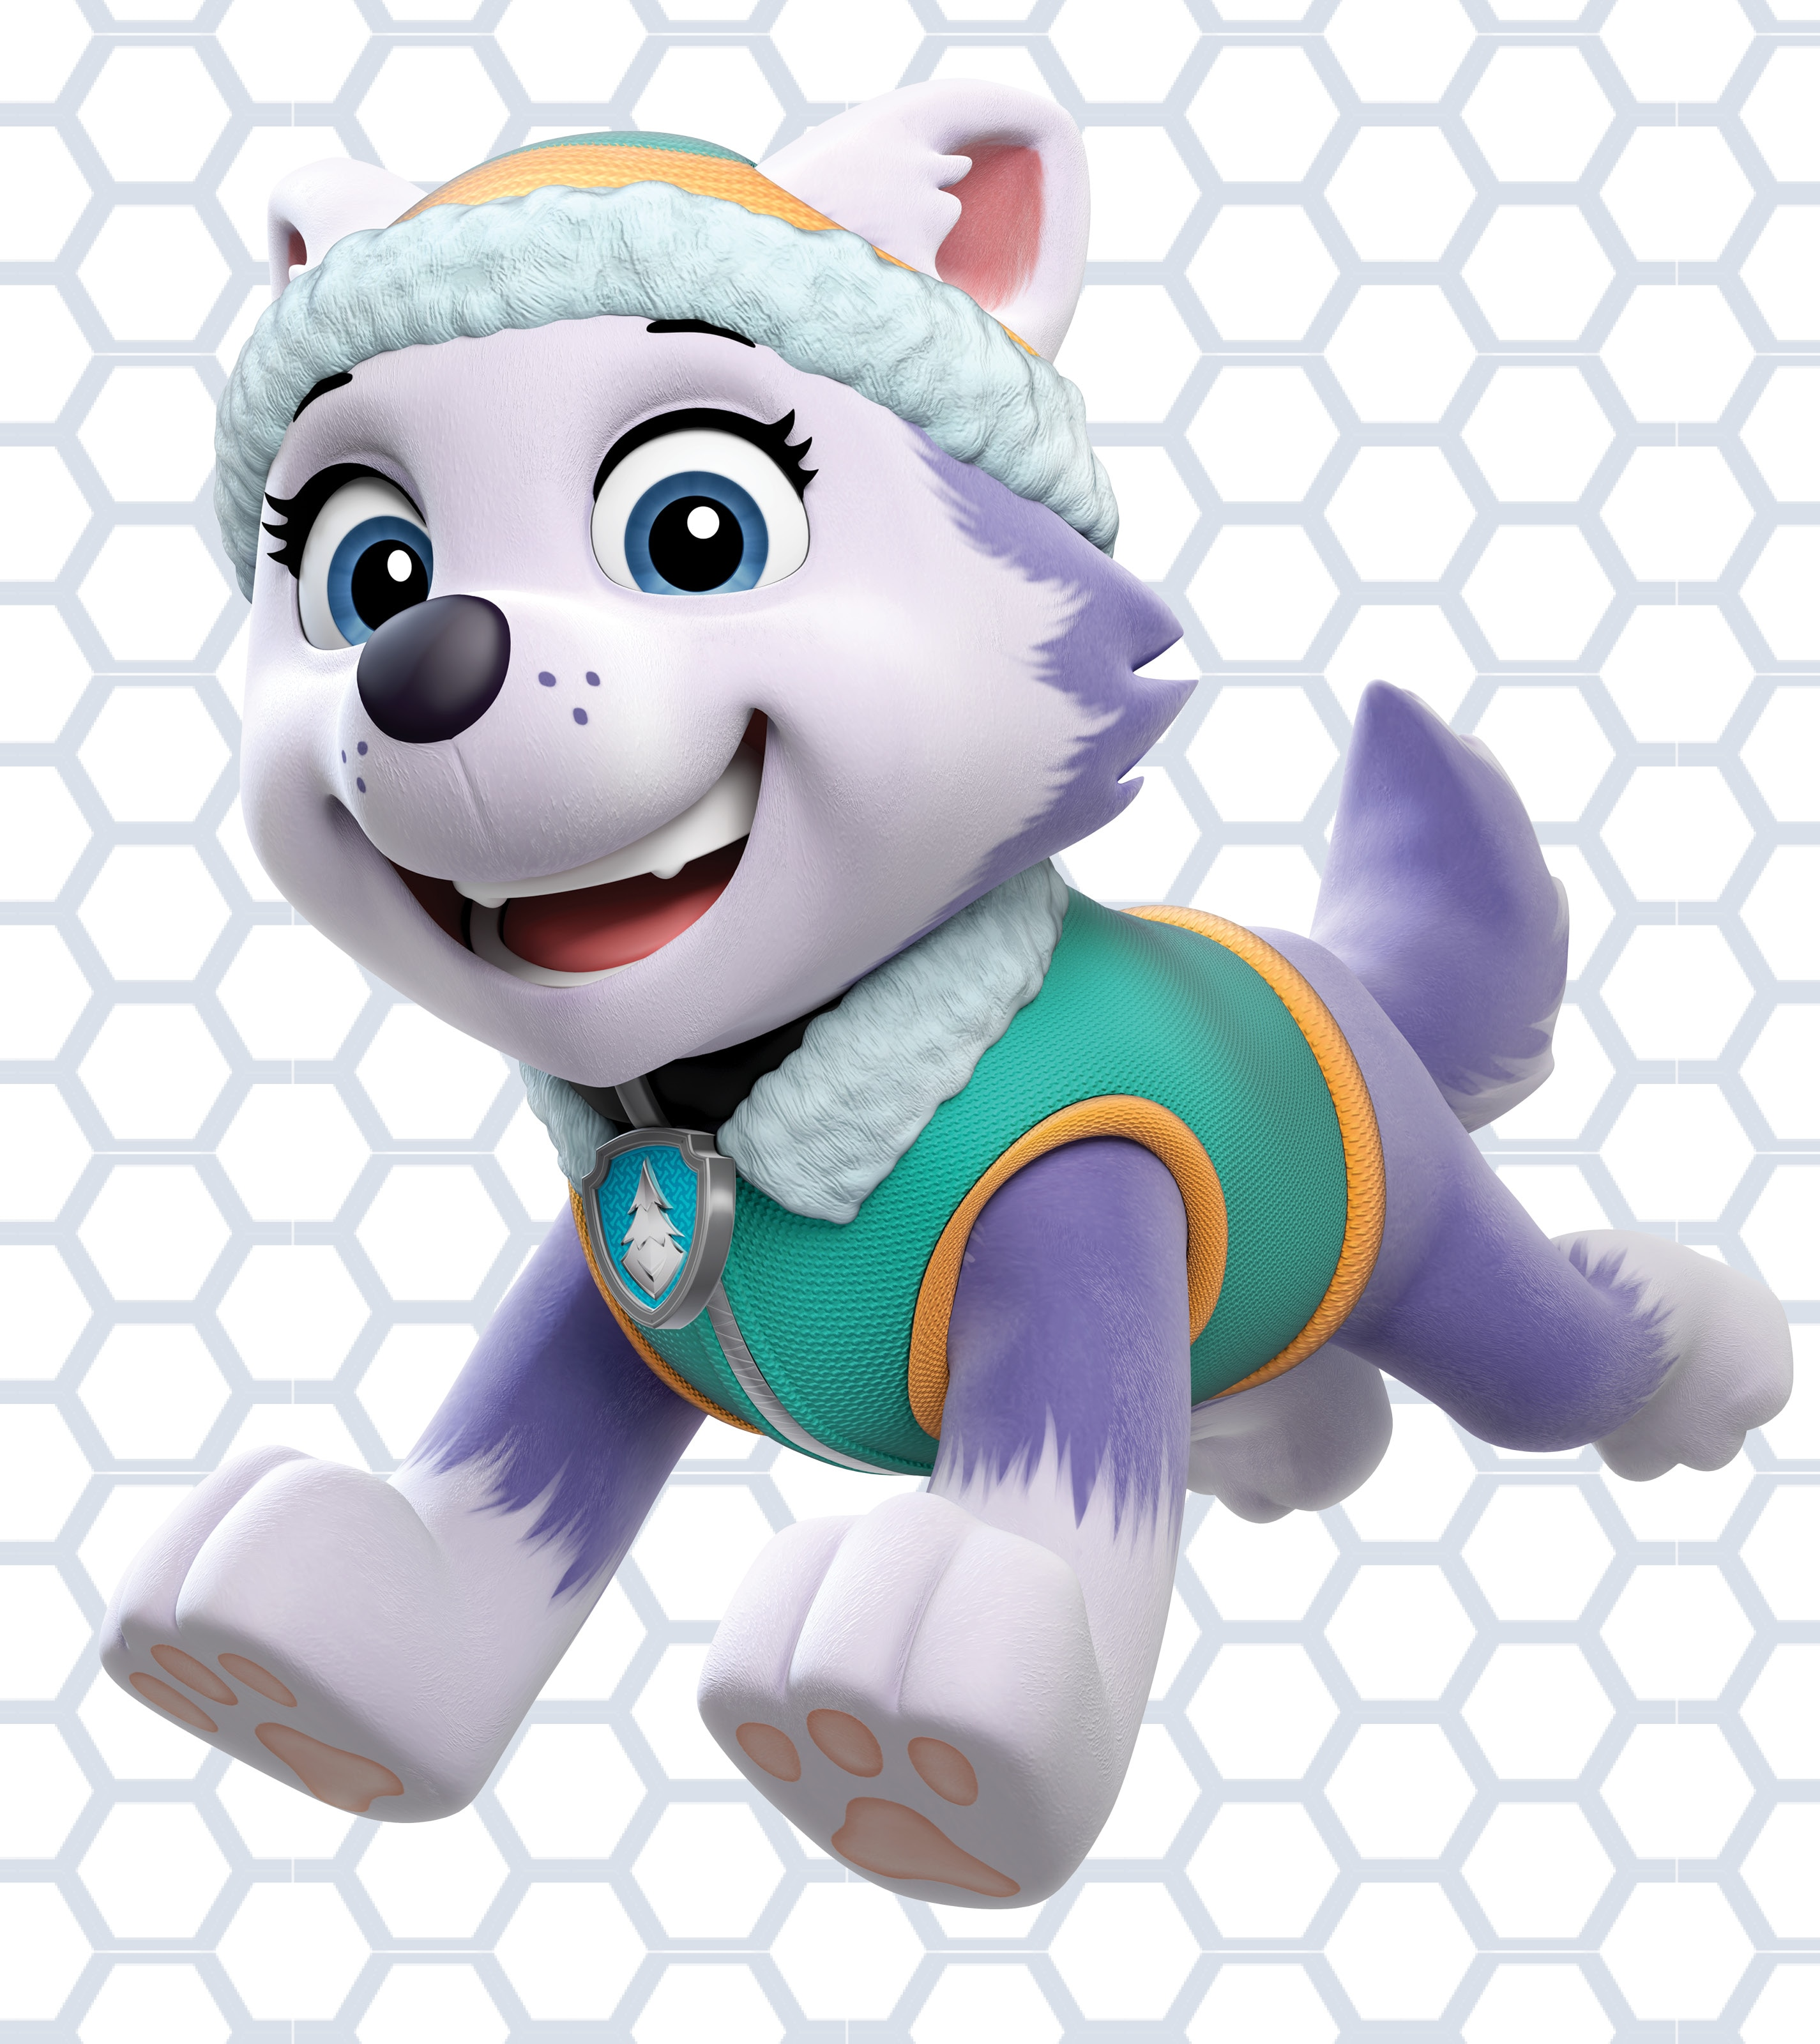 PAW Patrol Live! Everest